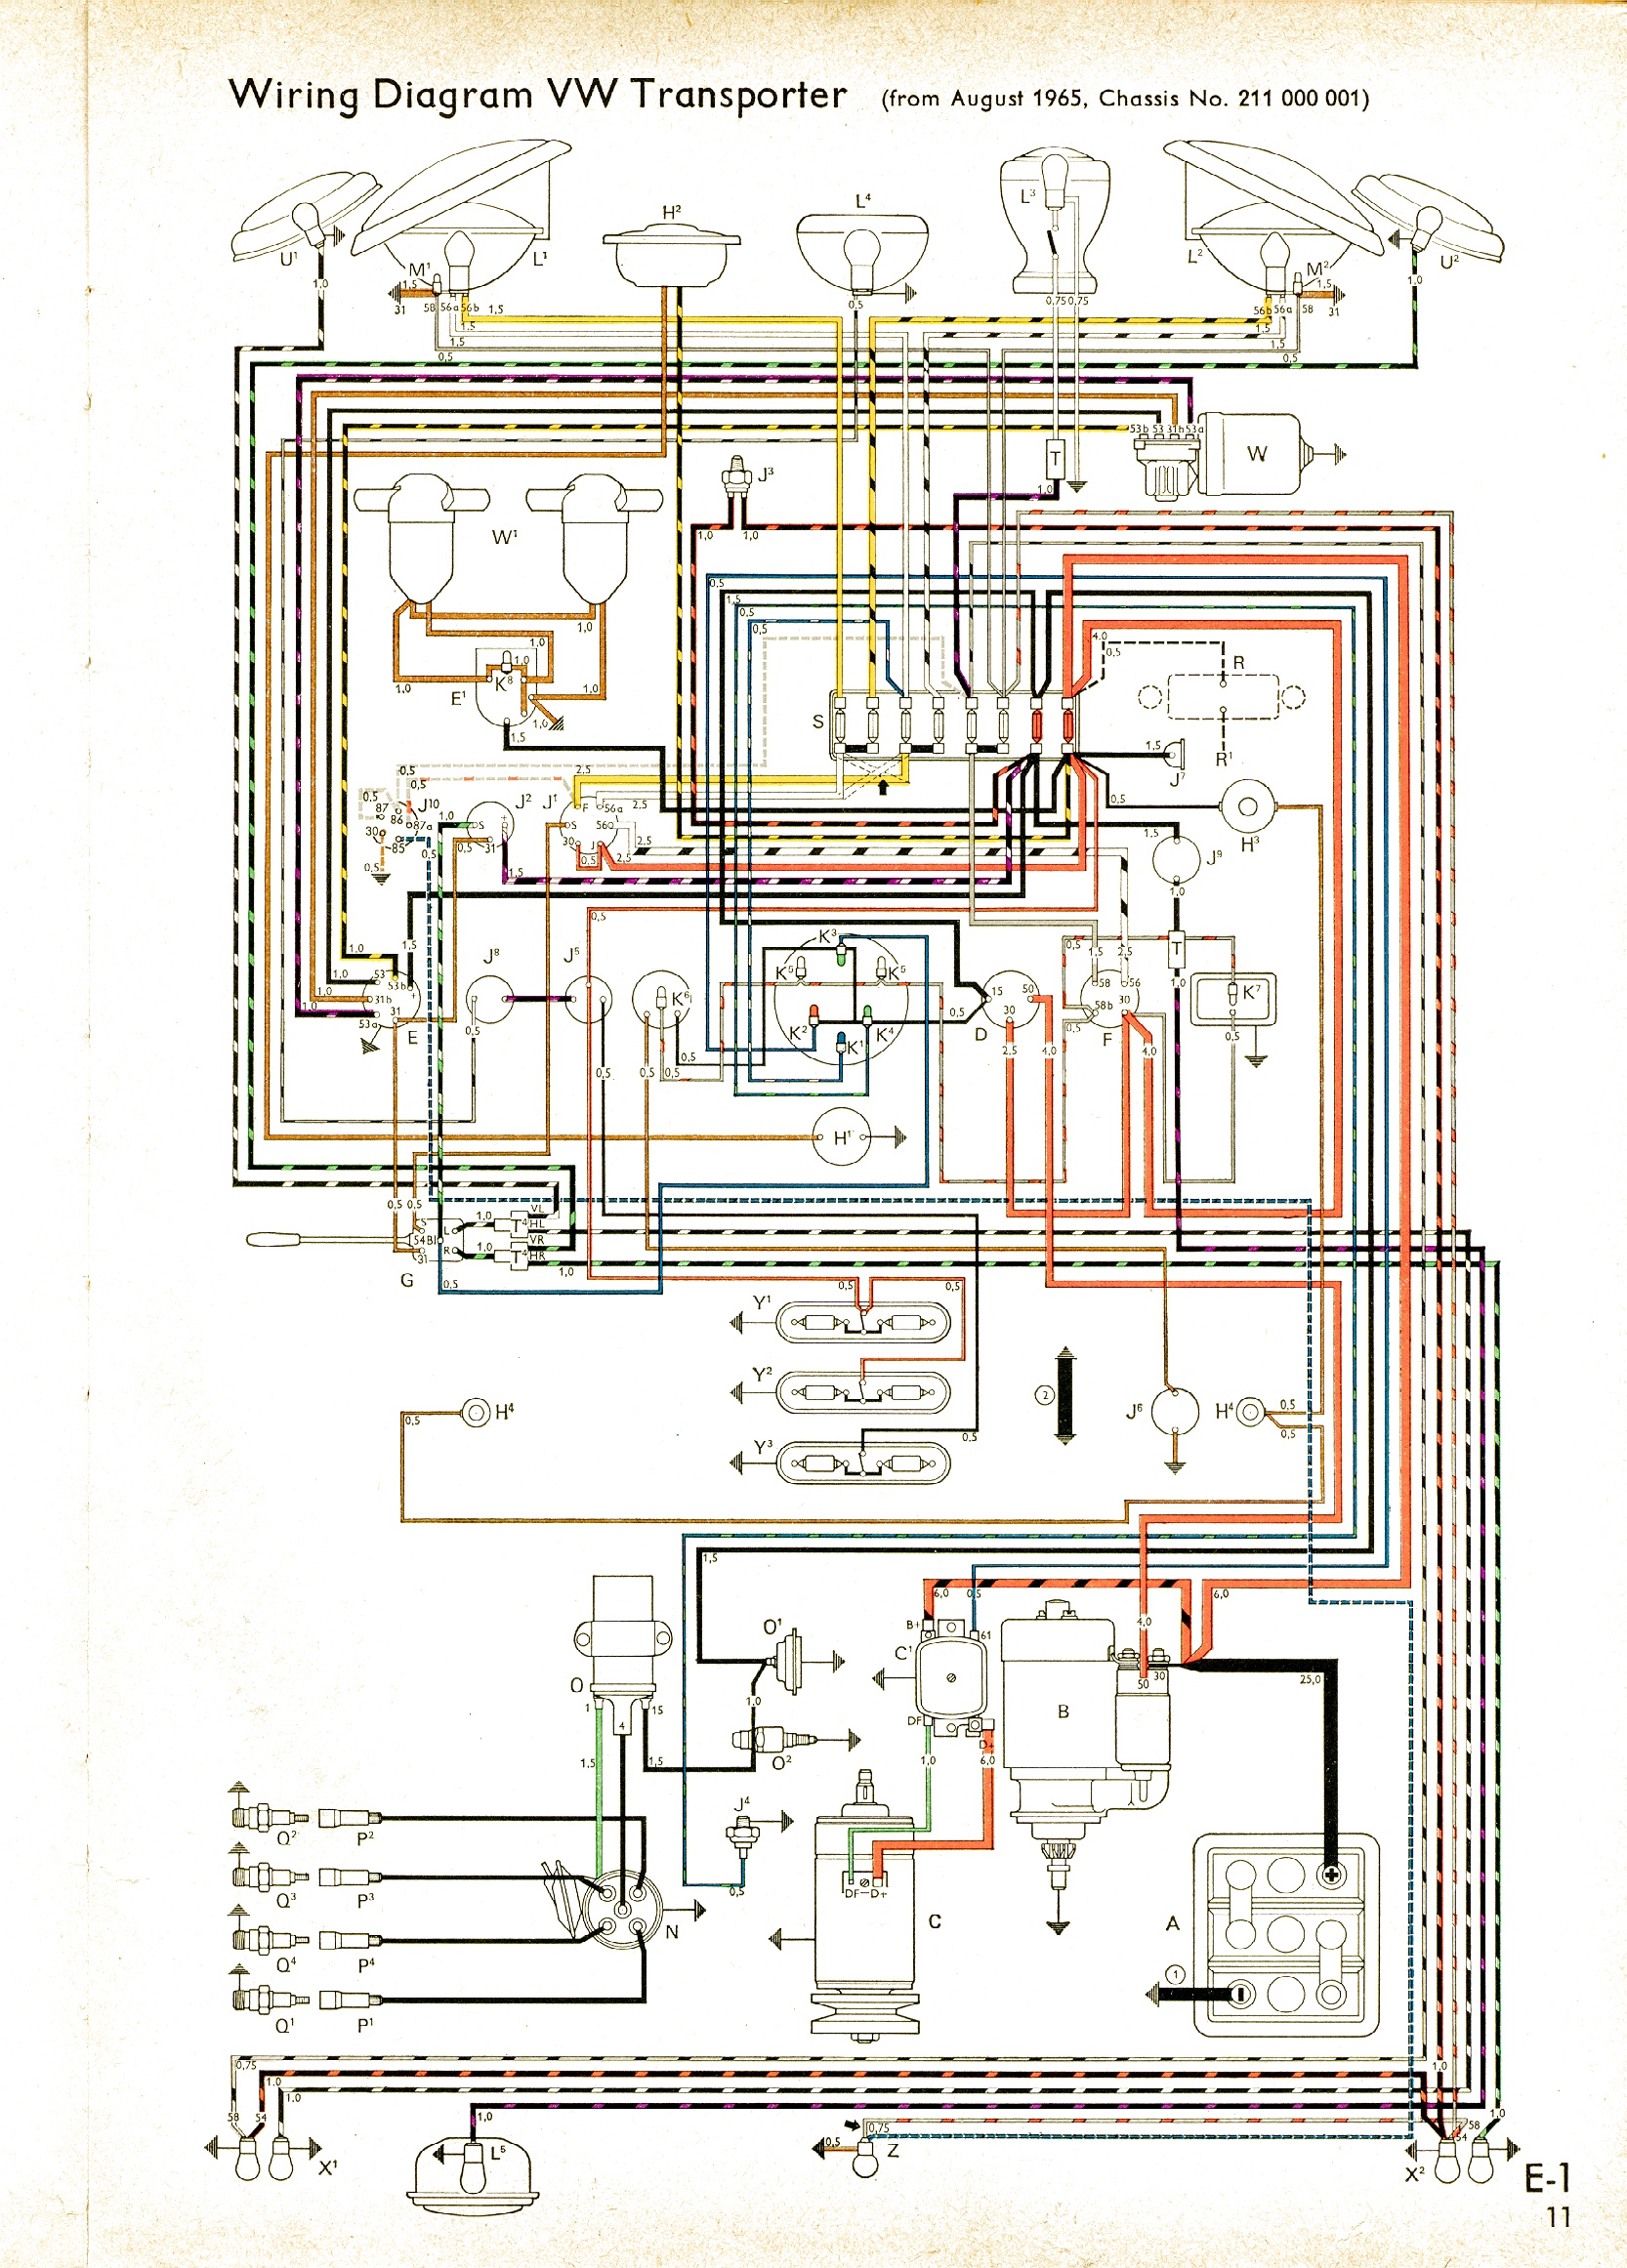 77 Vw Van Wiring Diagram The Portal And Forum Of Land Rover Ffr 79 Bus Third Level Rh 19 9 11 Jacobwinterstein Com 1974 Diagrams Harness Kits